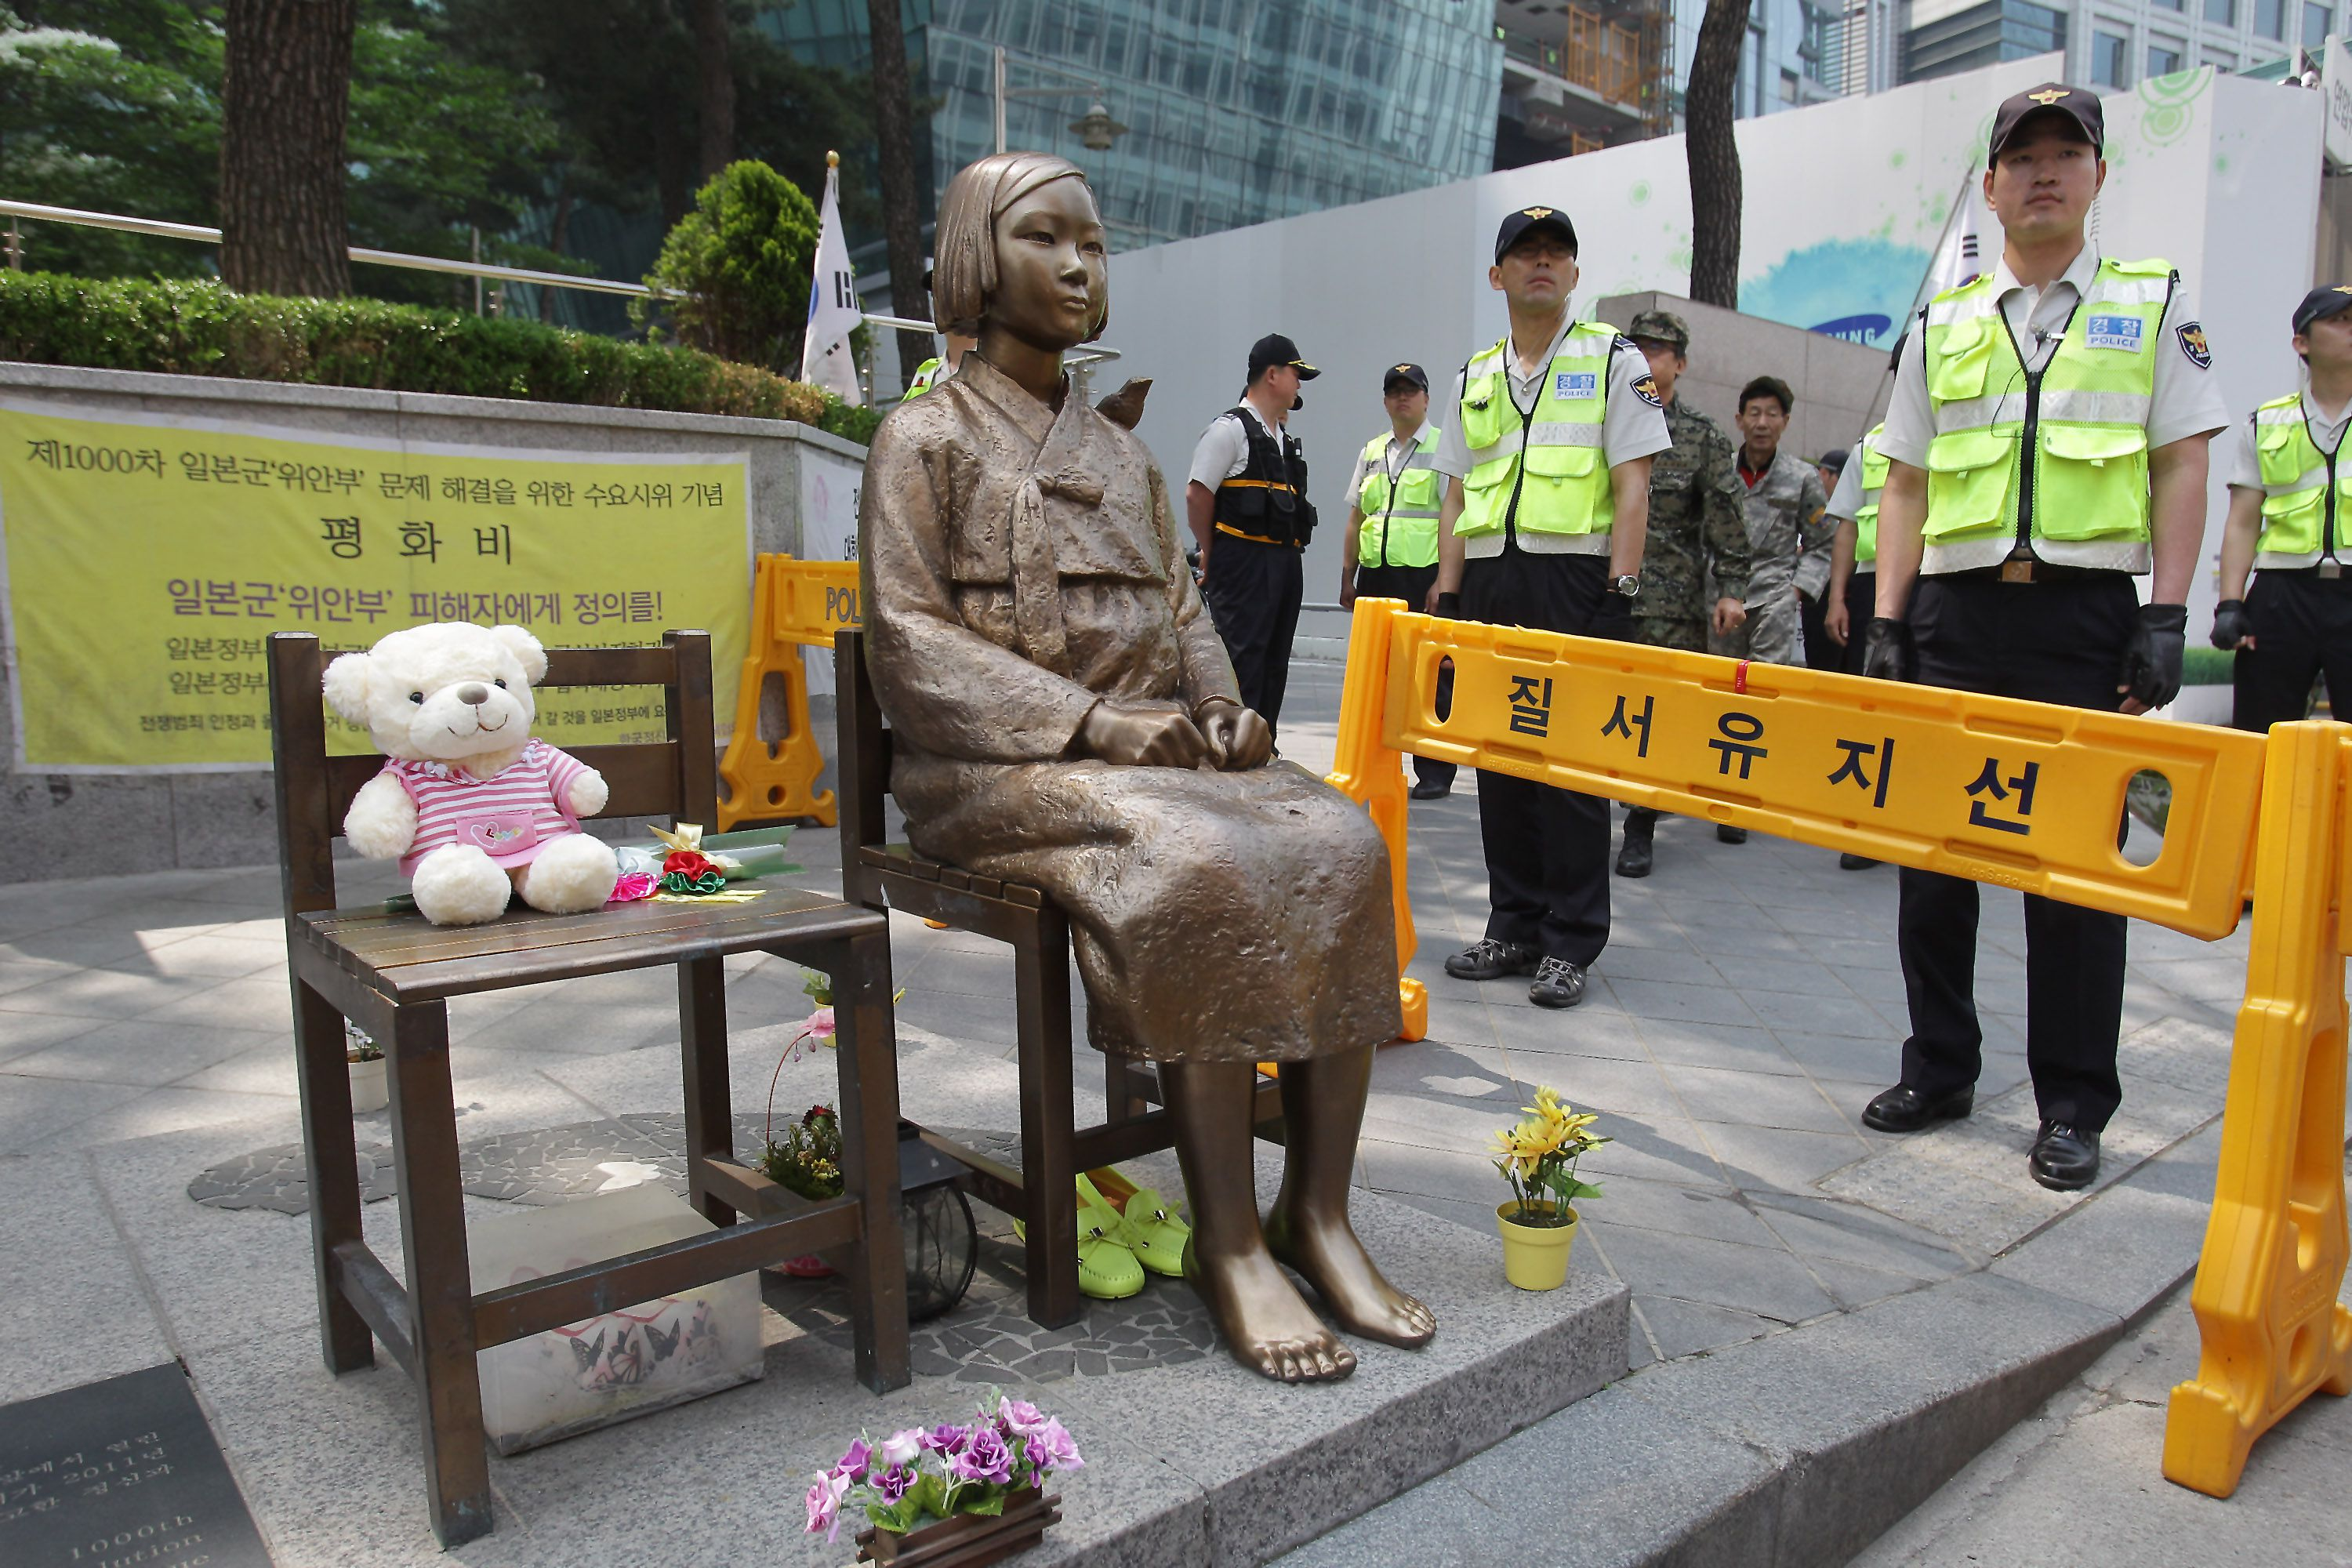 Guards standing around comfort woman statue in Seoul, South Korean.